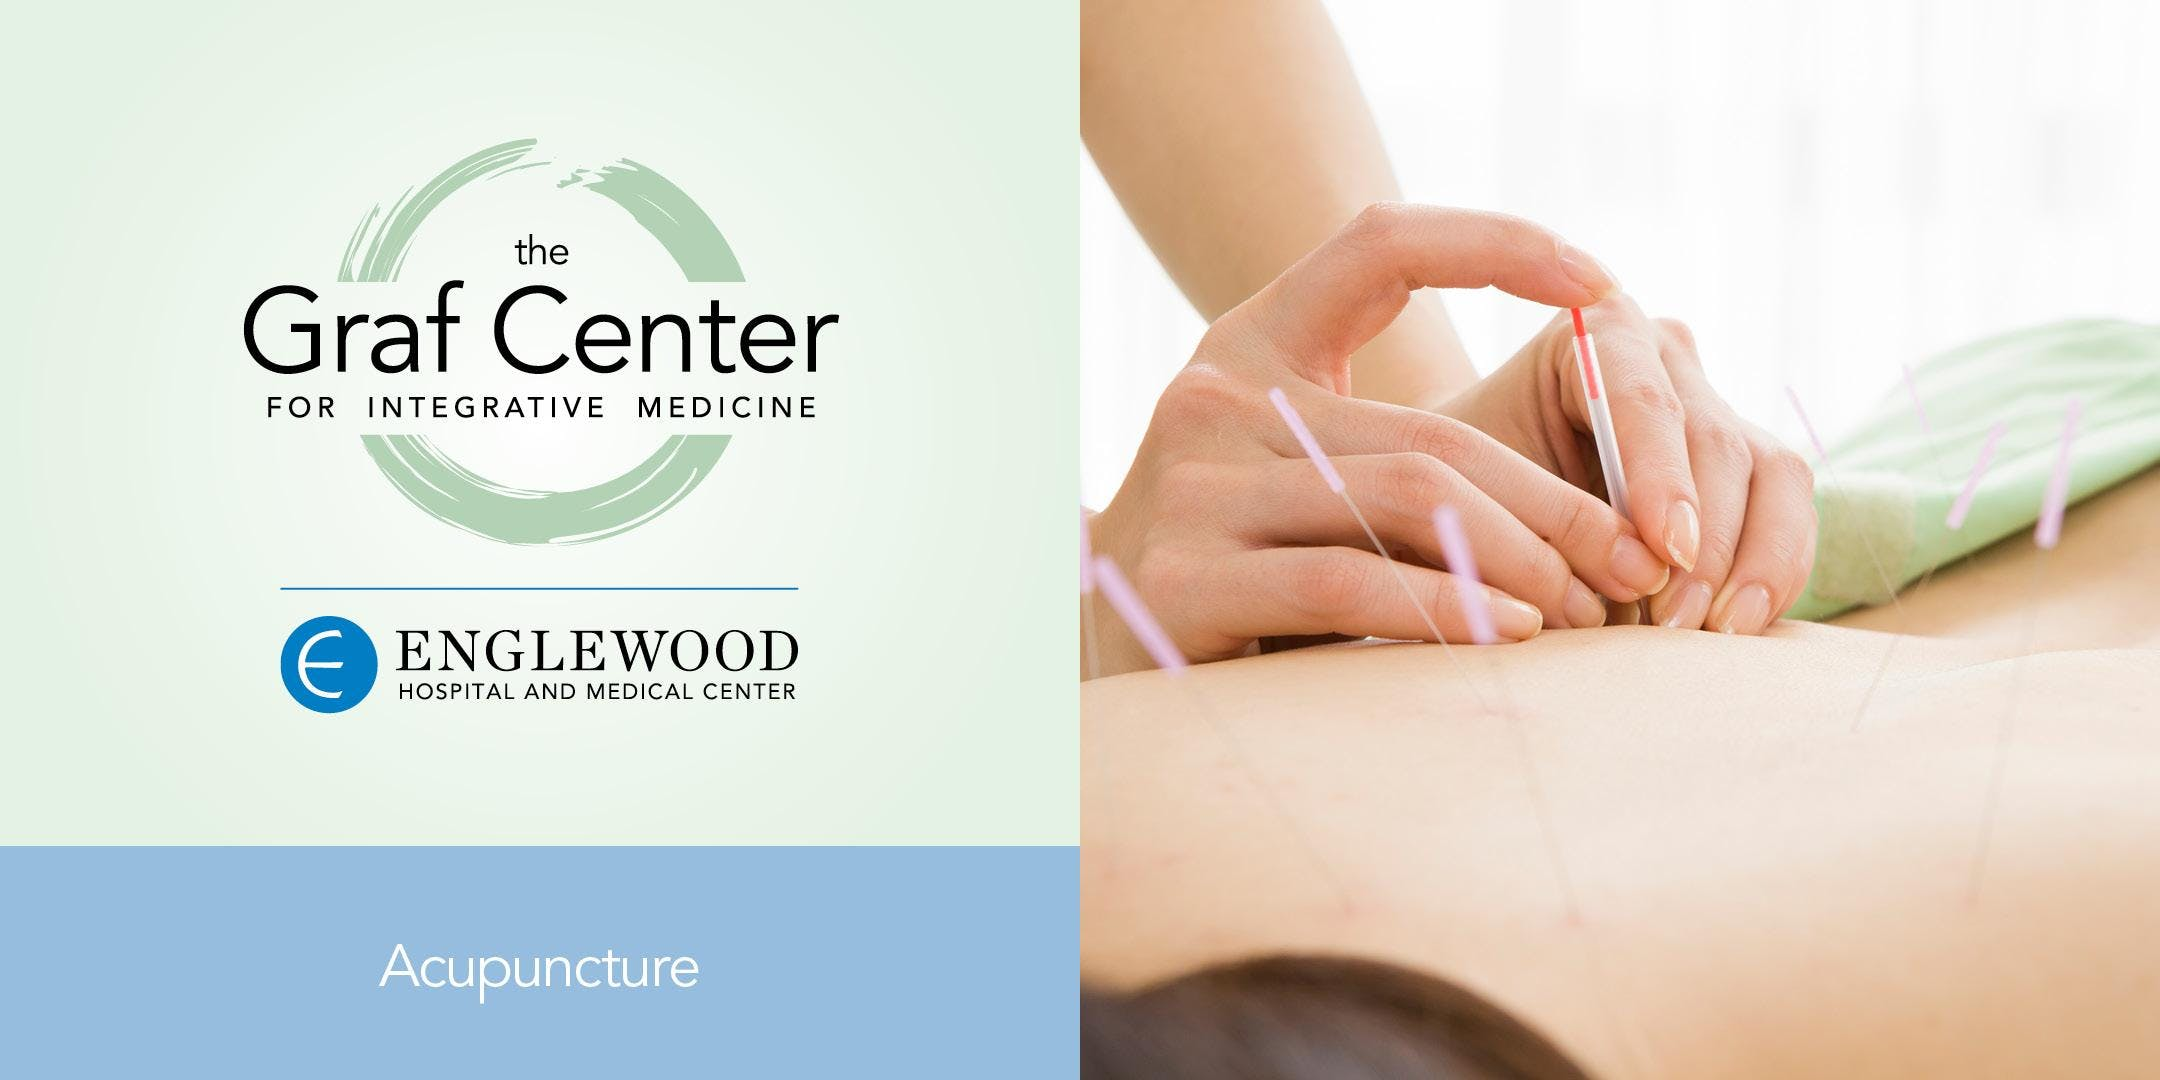 More info: Acupuncture for Aches and Pain (MAY 14)